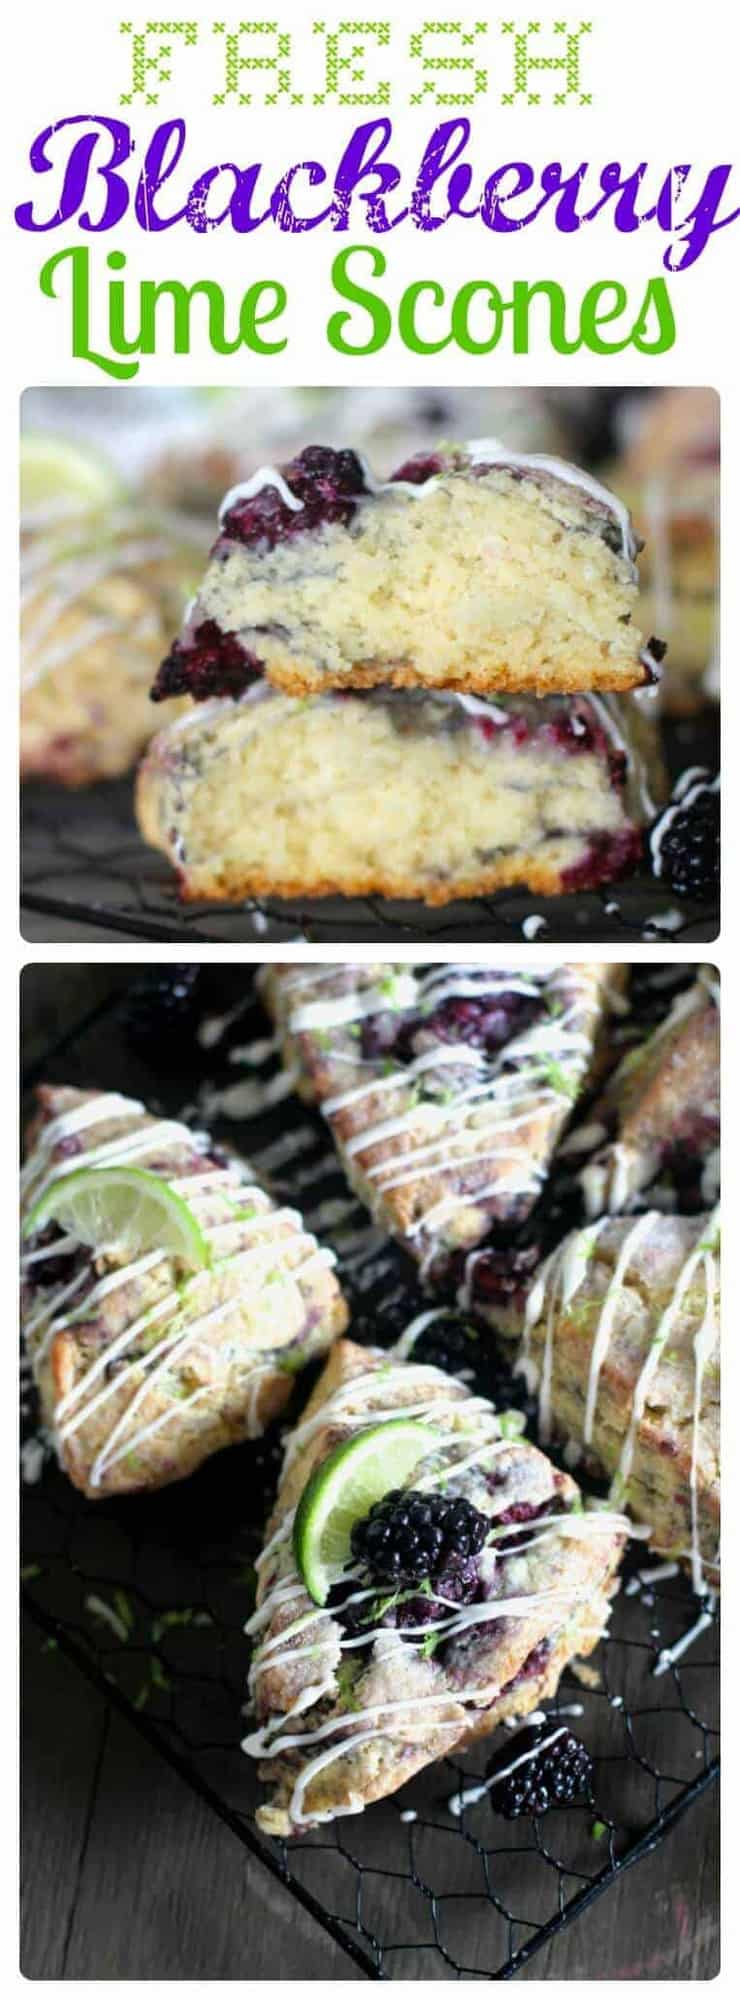 Jump into spring with these delicious Blackberry Lime Scones that are loaded with fresh blackberries and tangy lime. They make the perfect treat for your Spring get-togethers.